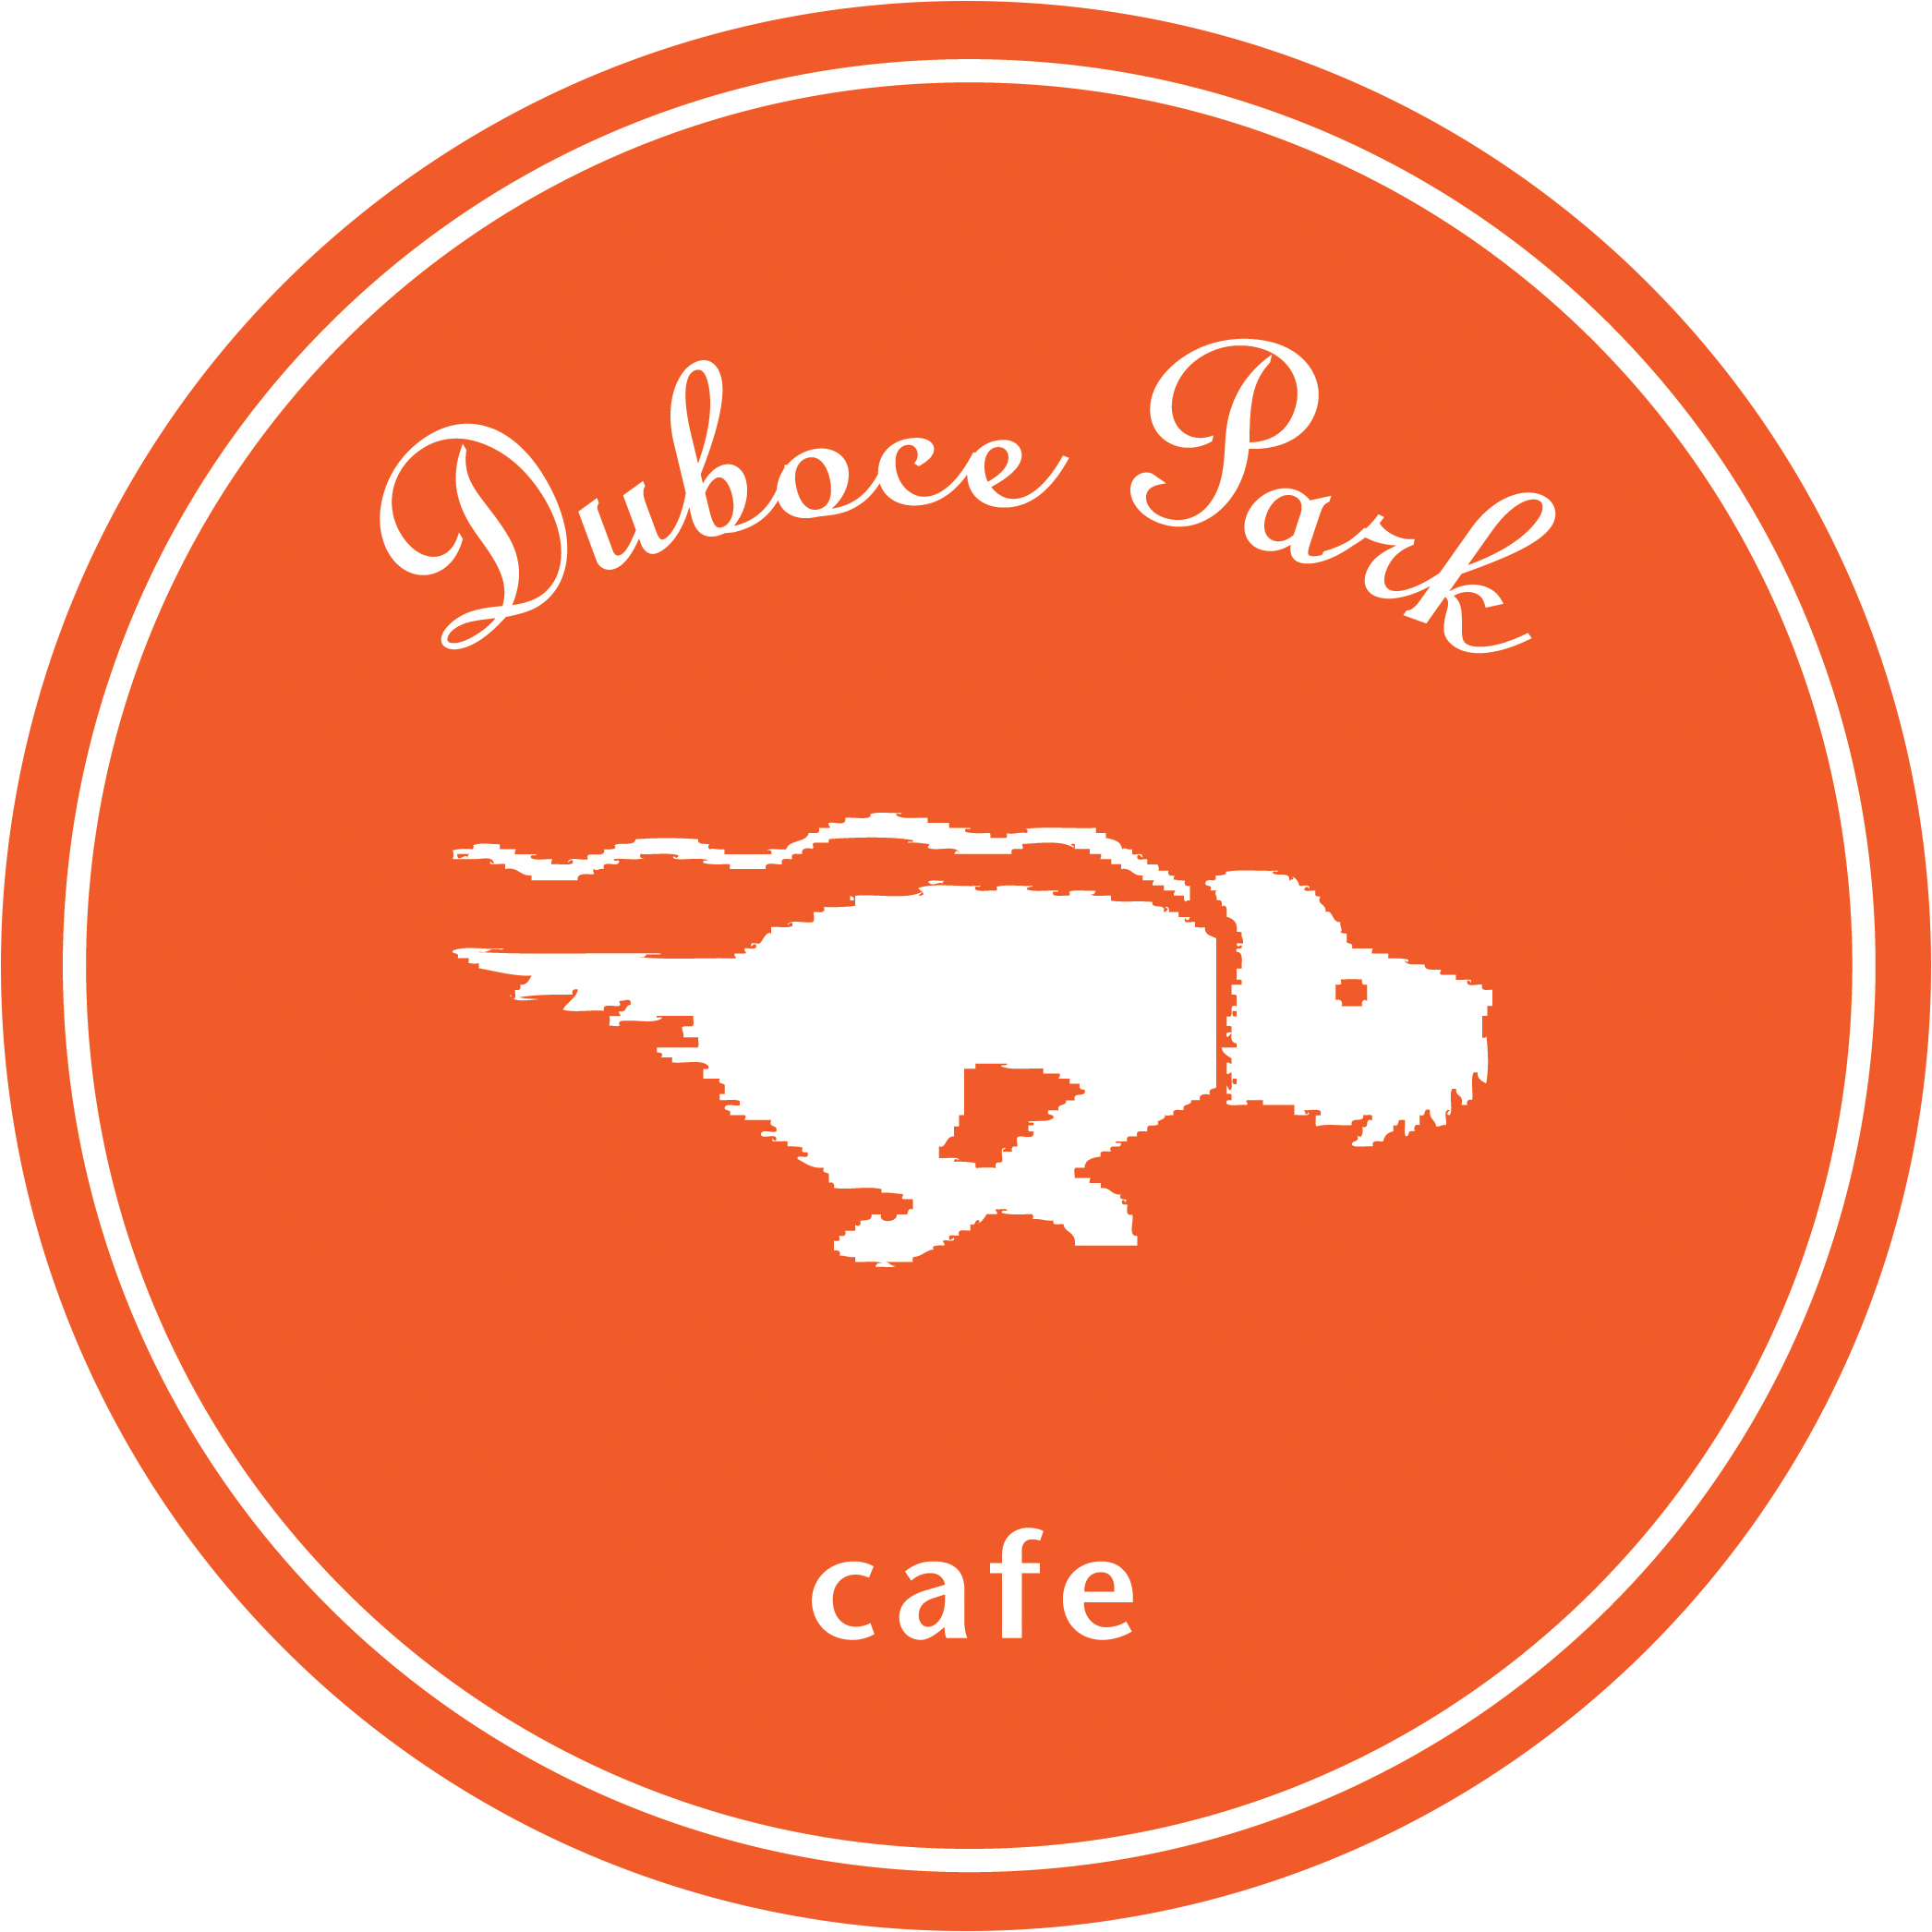 Duboce Park Cafe   2 Sanchez at Duboce   San Francisco, CA 94110 415.621.1108